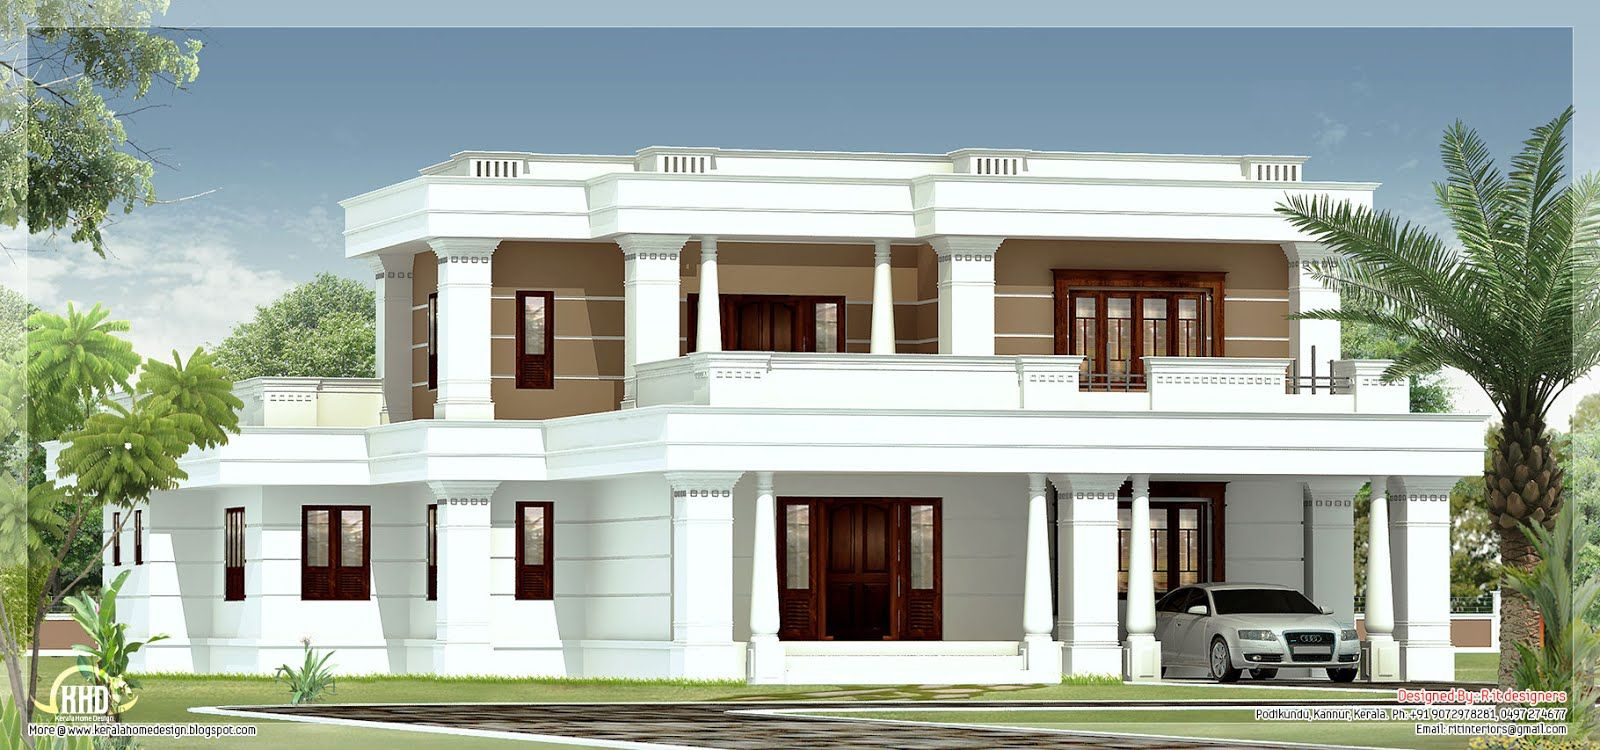 Flat roof homes designs november 2012 kerala home for Kerala home design flat roof elevation